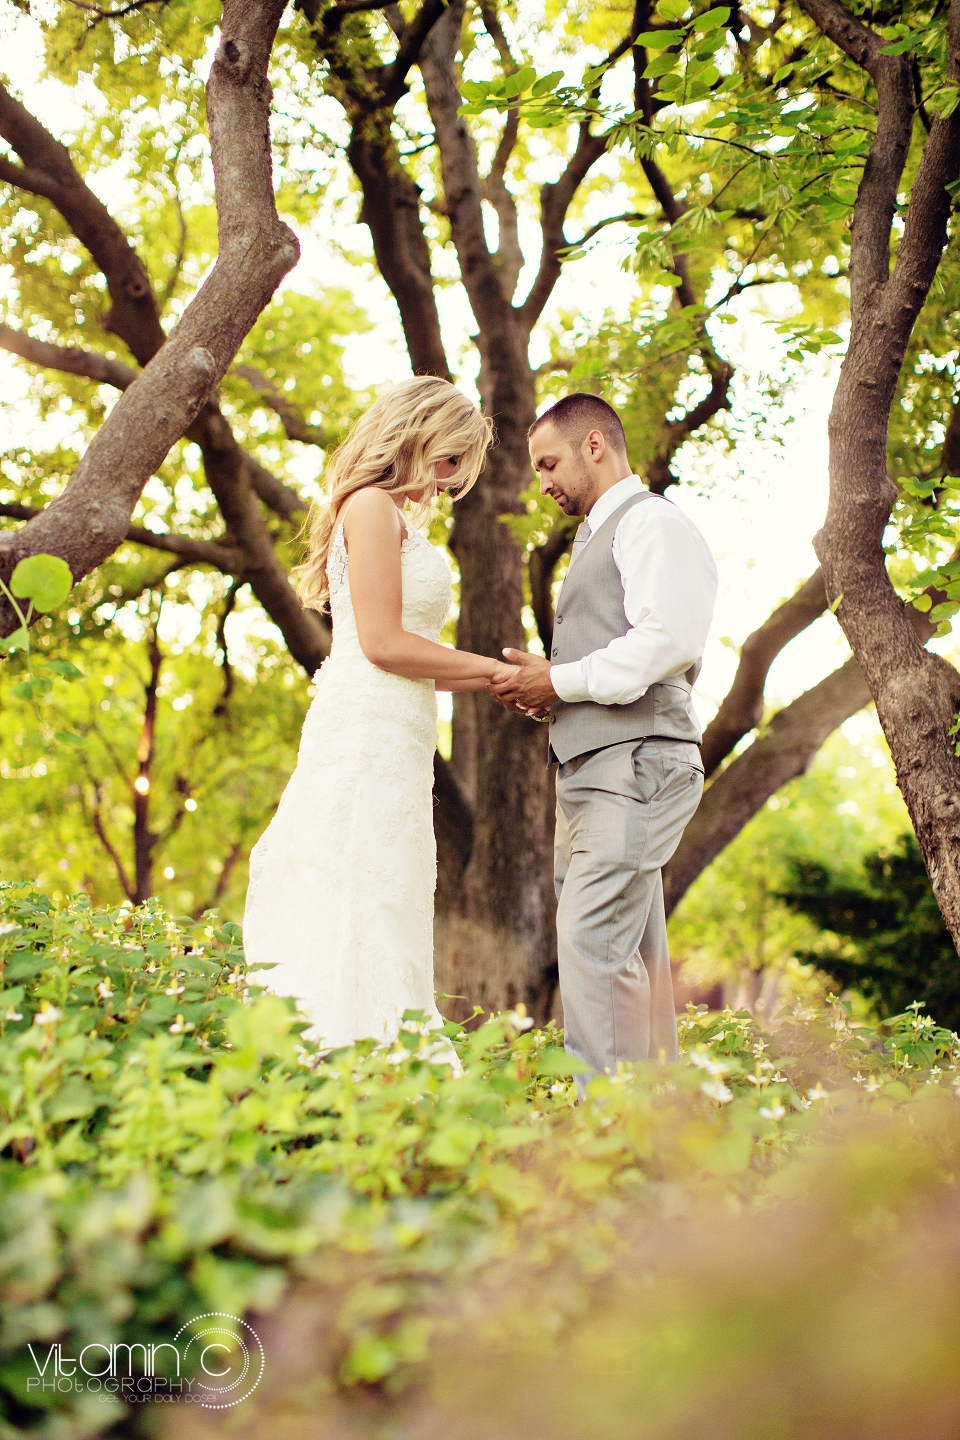 Monica + Drew | Botanica Gardens Wichita Kansas Wedding Photographer